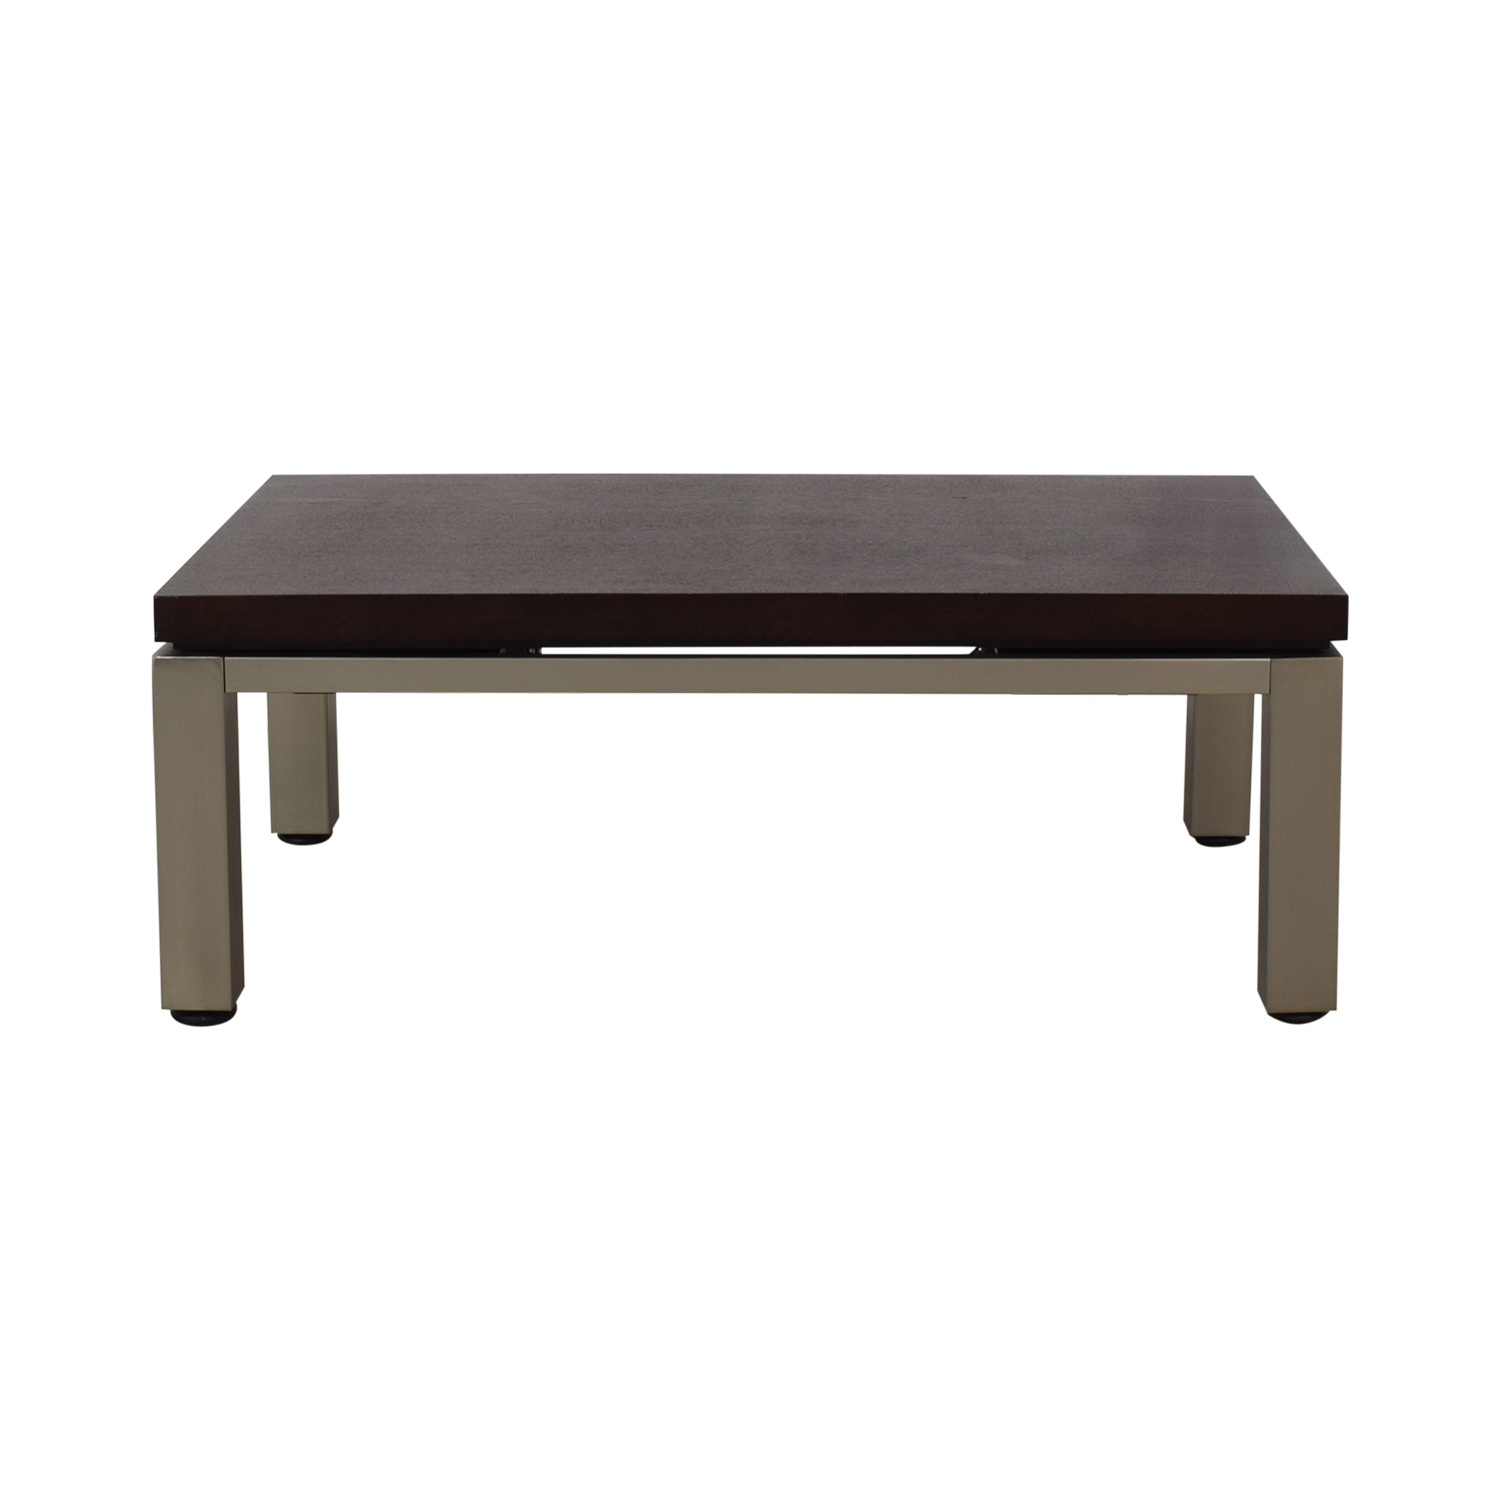 Lift Top Coffee Table dark brown